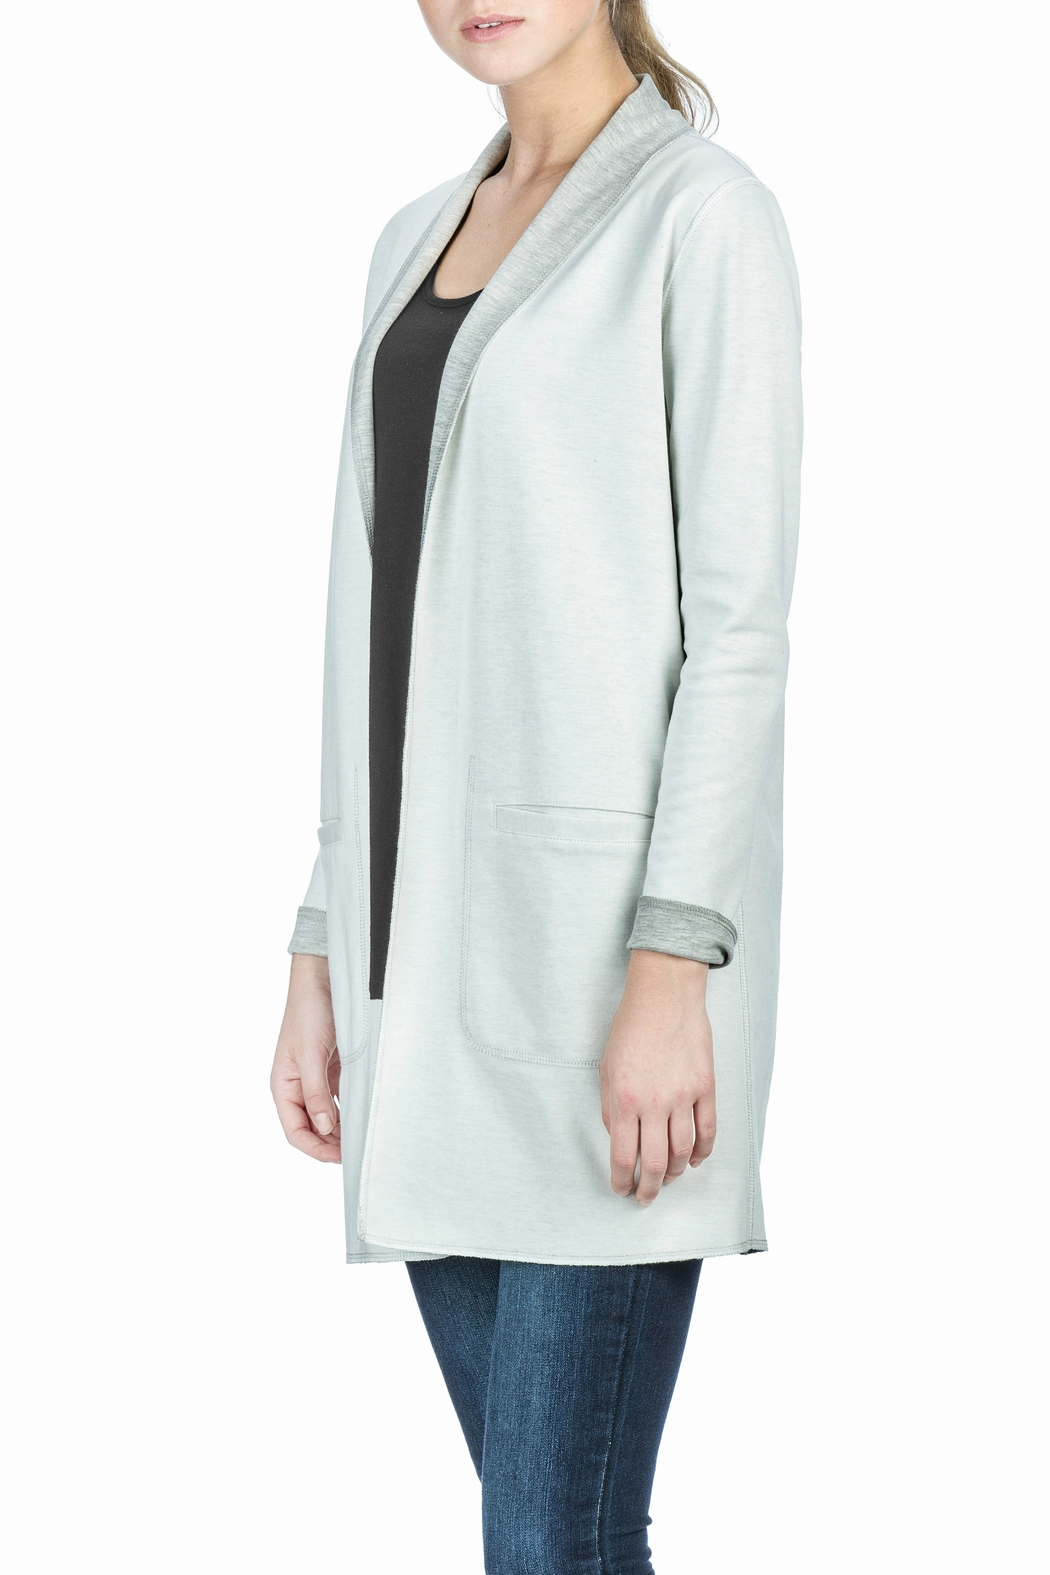 Lilla P Reversible Mid Length Coat - Side Cropped Image